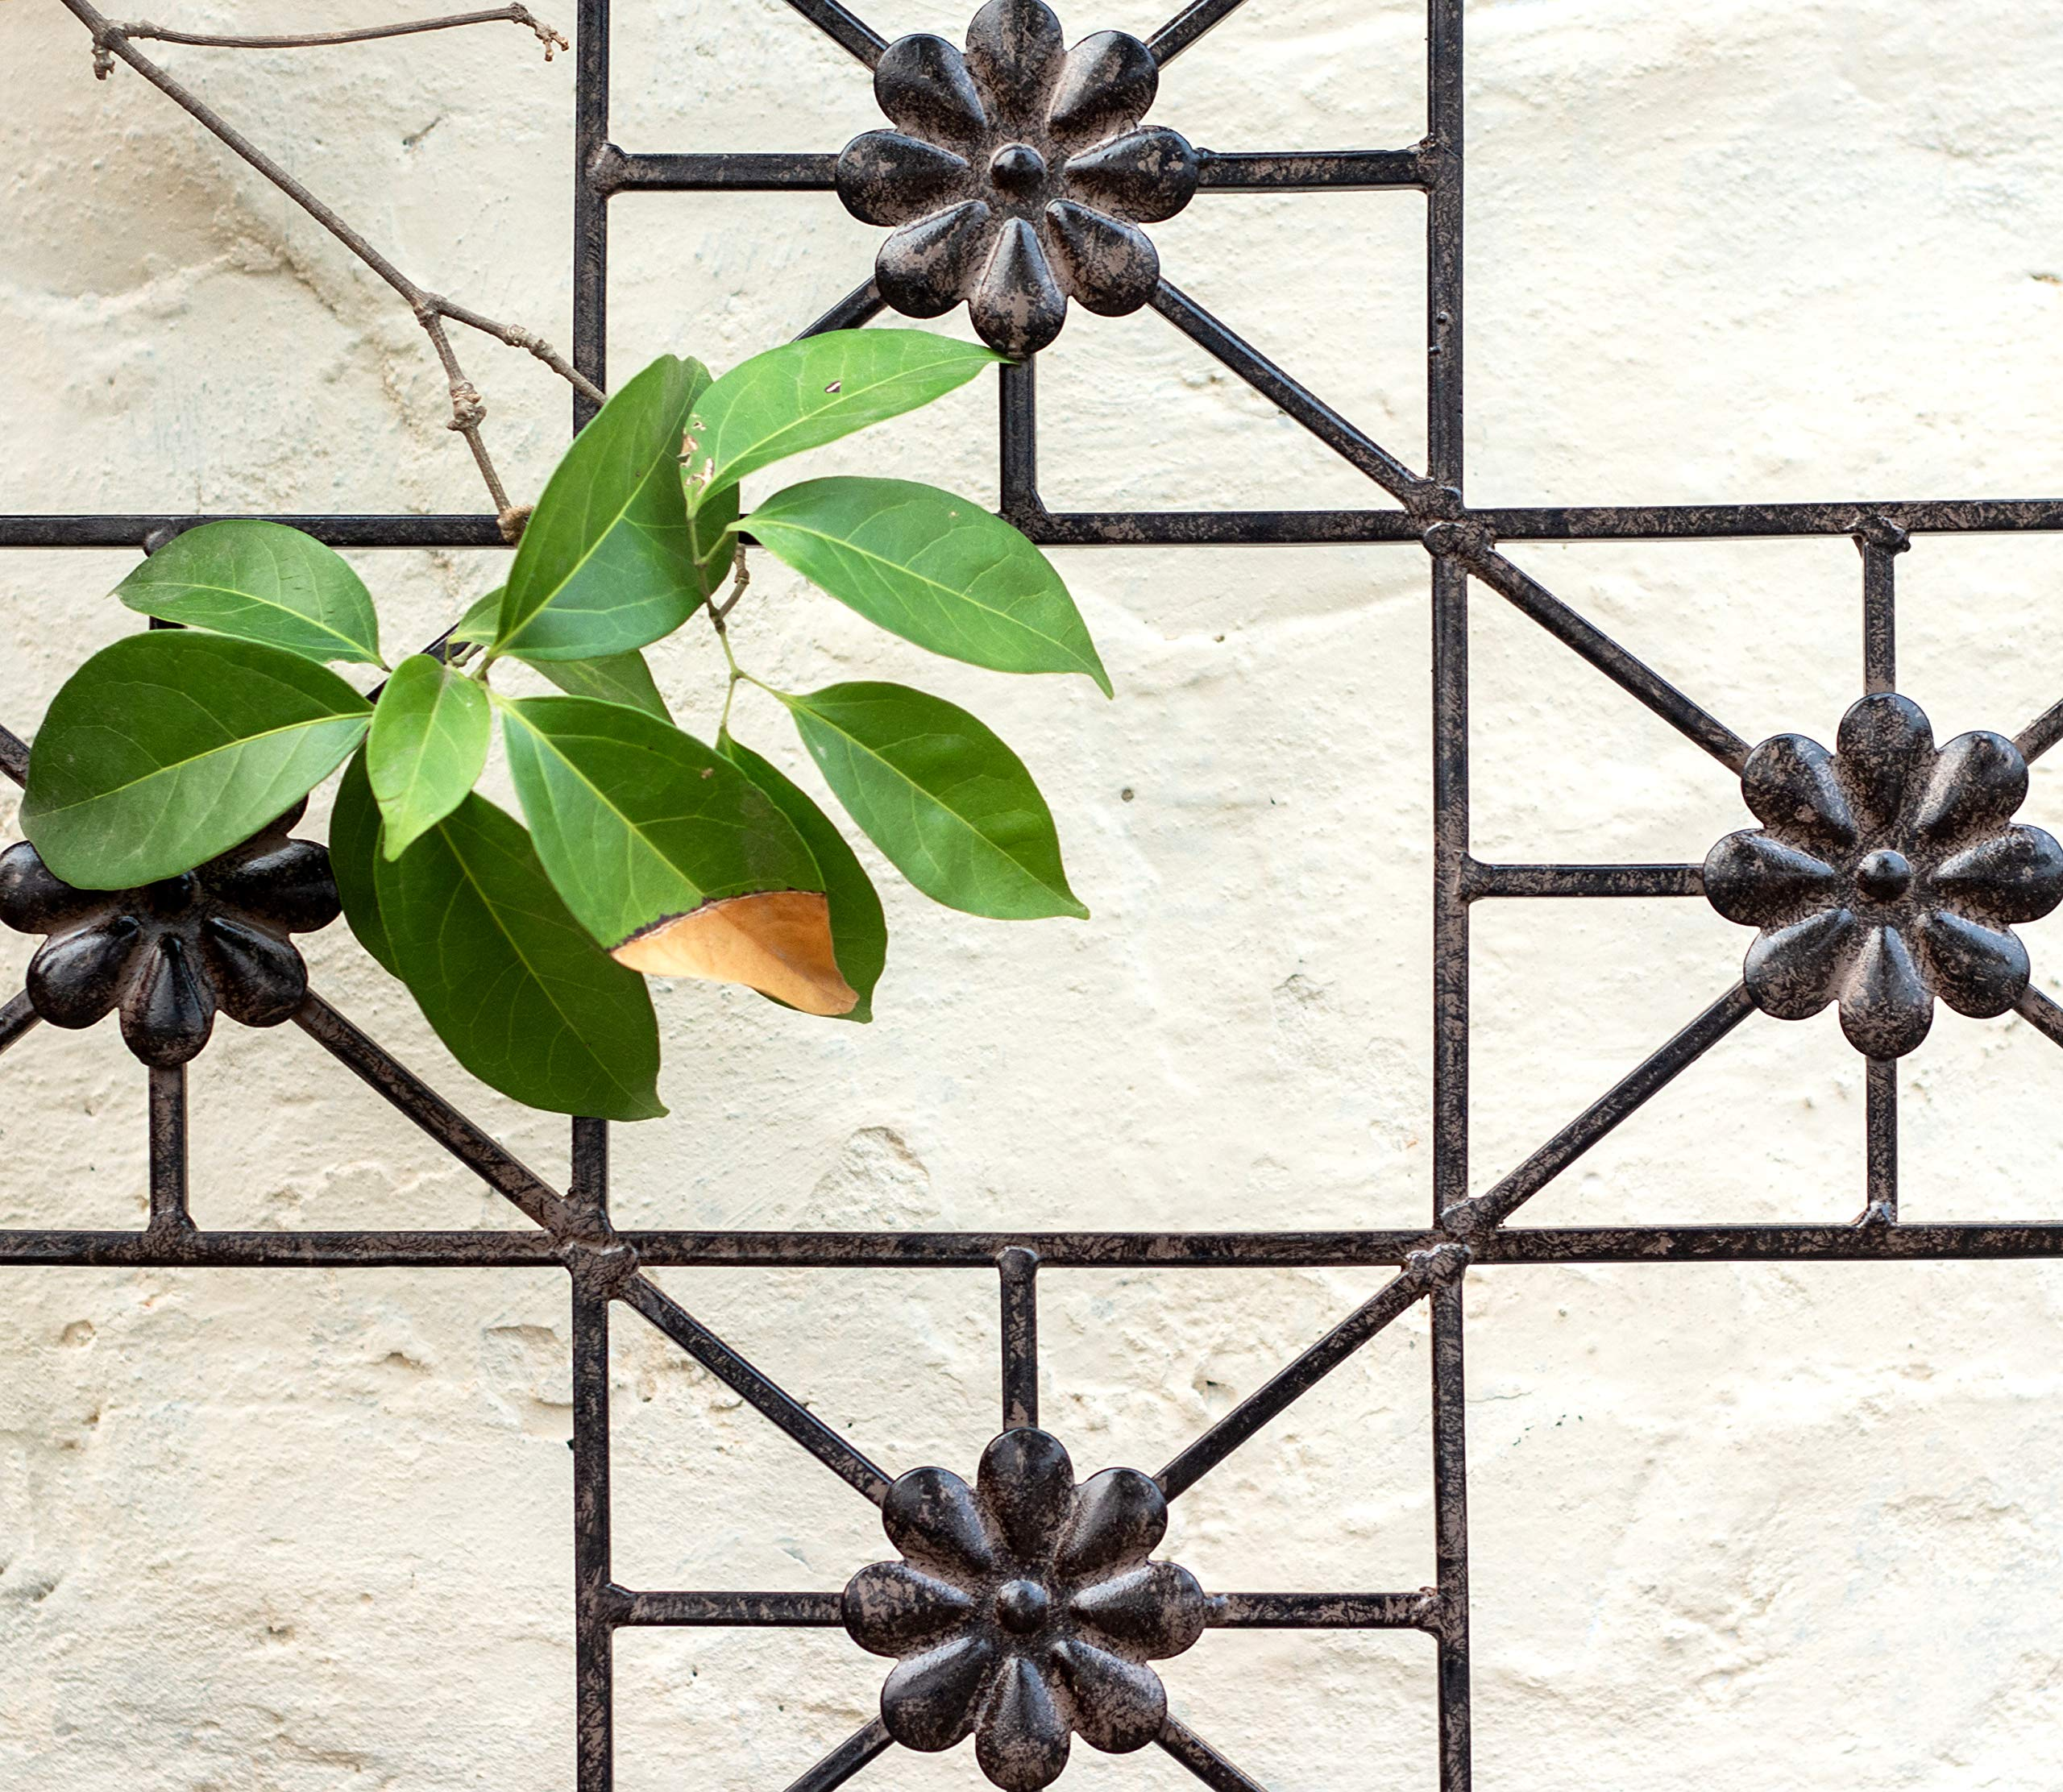 H Potter 5.5 Foot Tall Garden Flower Trellis Wrought Iron Heavy Scroll Metal Decoration Lawn, Patio & Wall Decor Screen for Rose, Clematis, Ivy Patio Deck Wall Art by H Potter (Image #3)